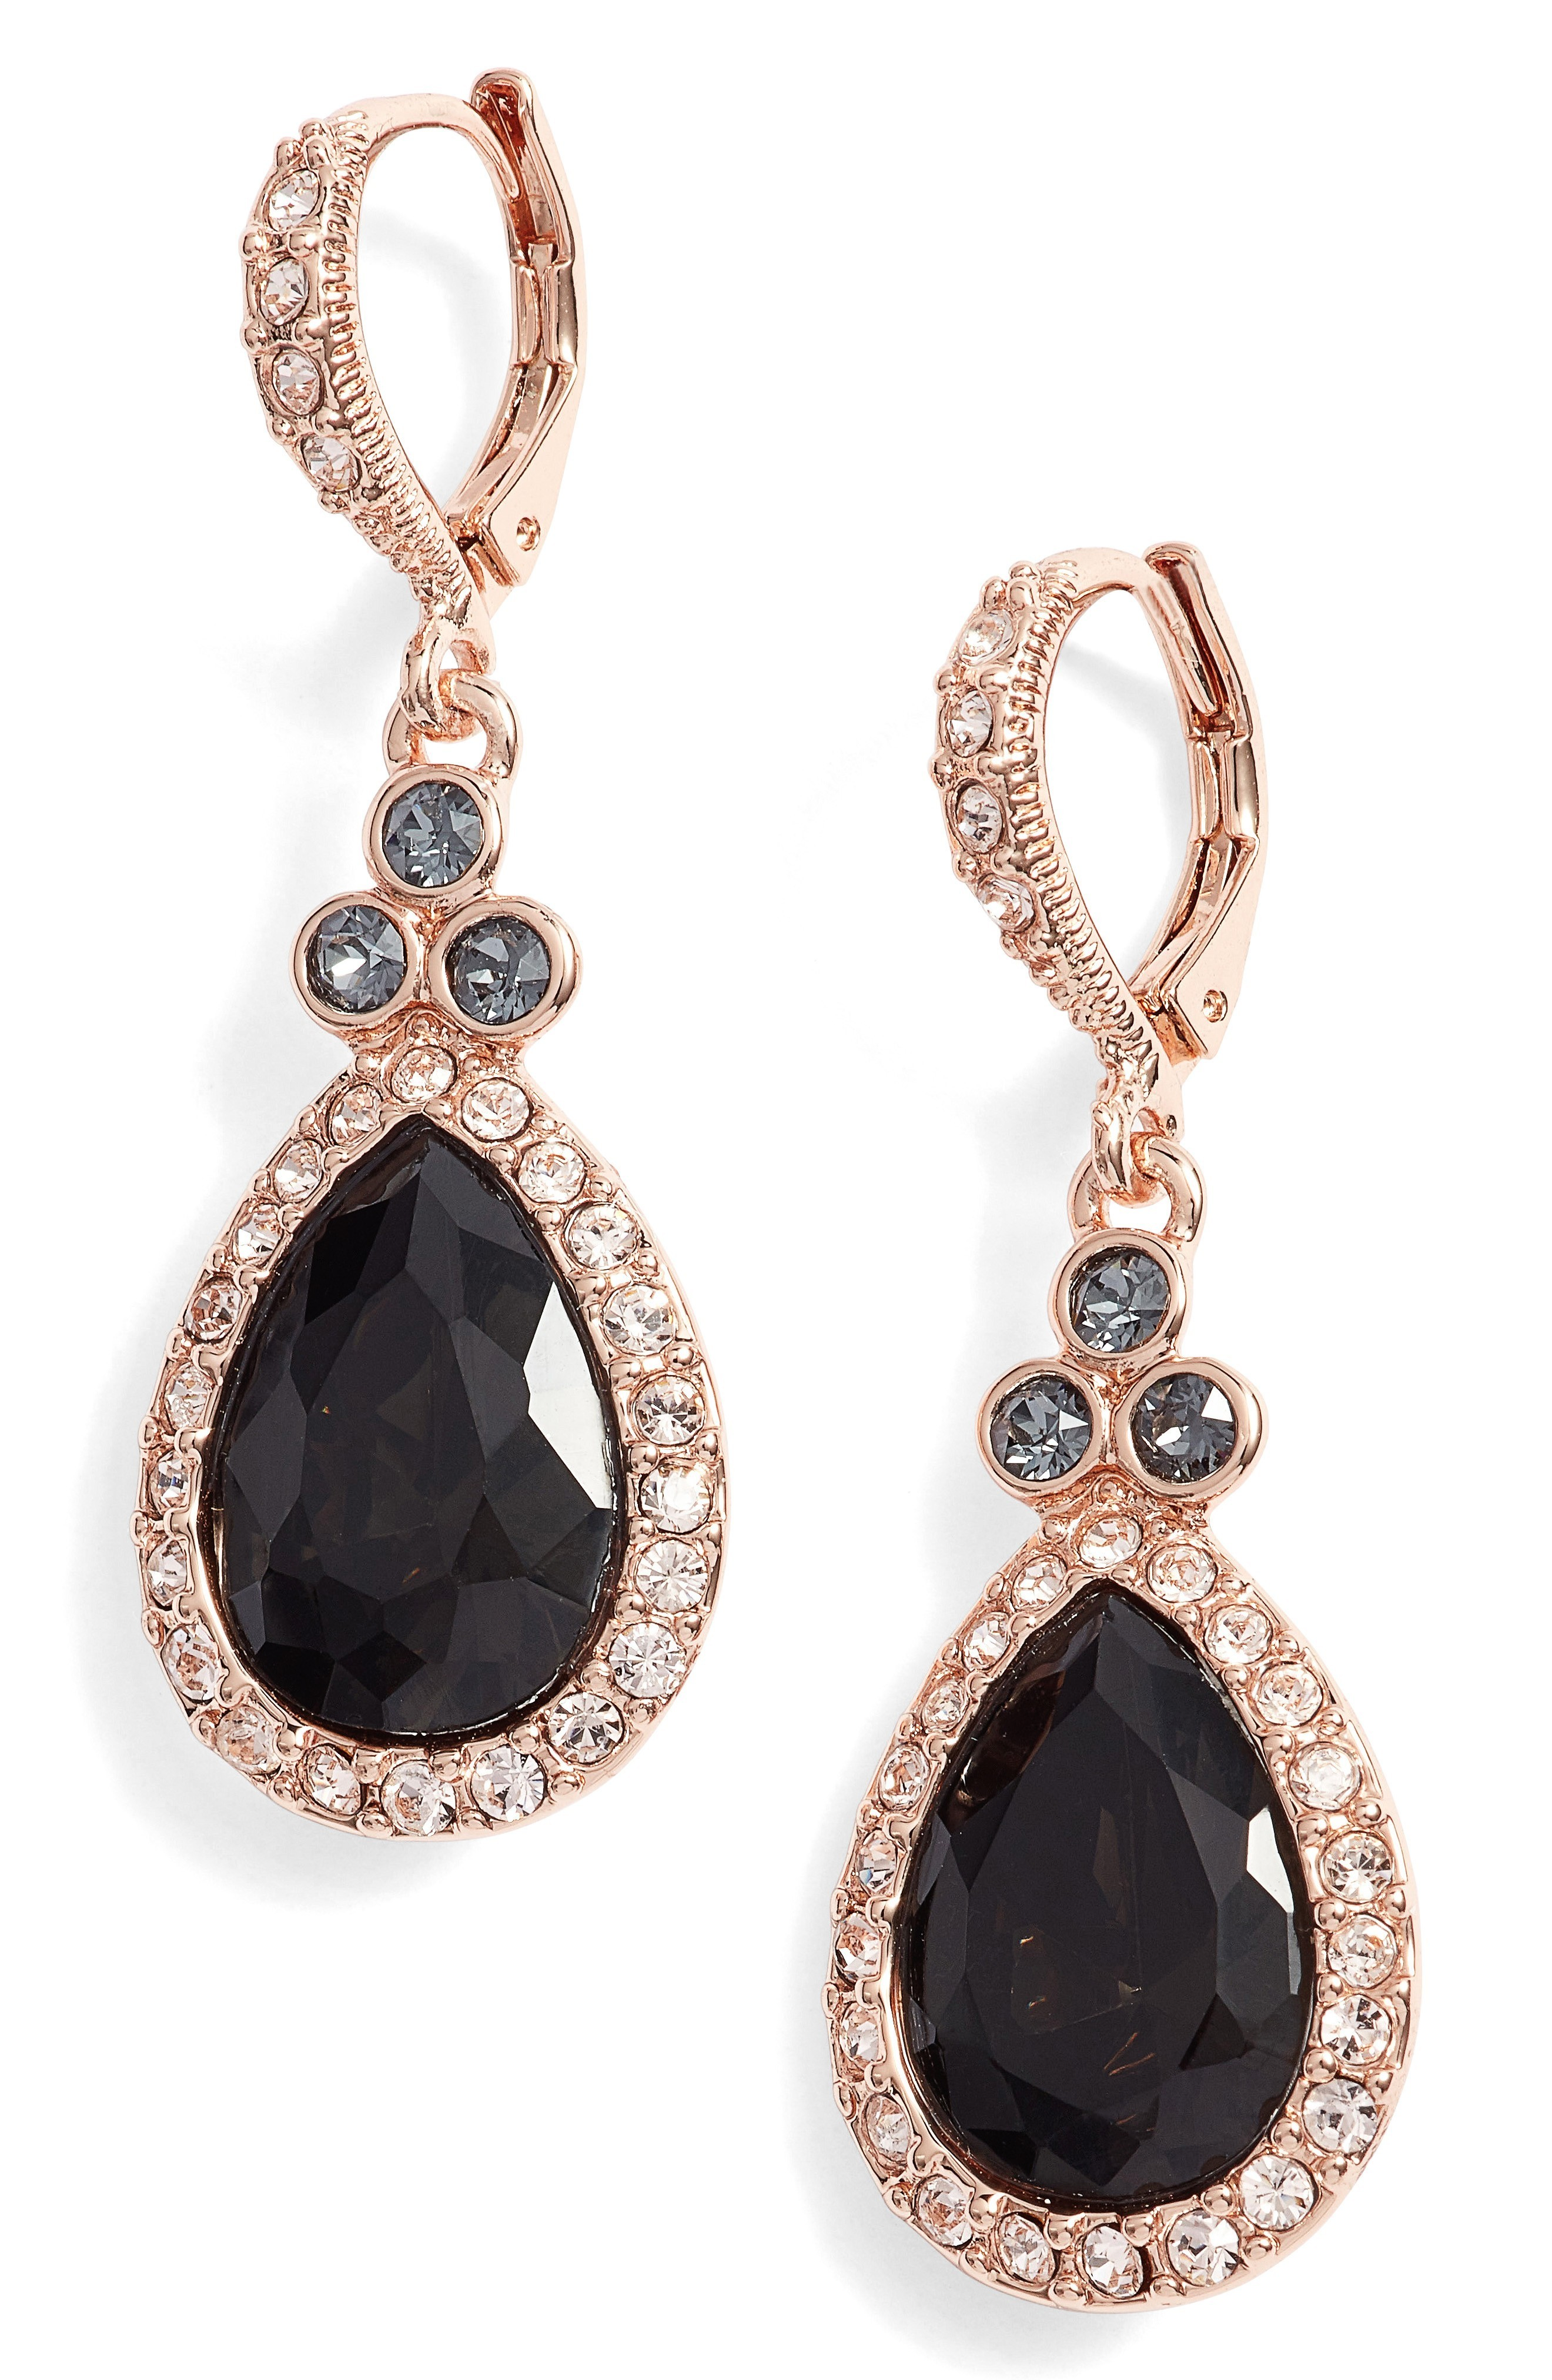 ◆GIVENCHY◆Givenchy Pave Pear Drop Earrings【関送込】